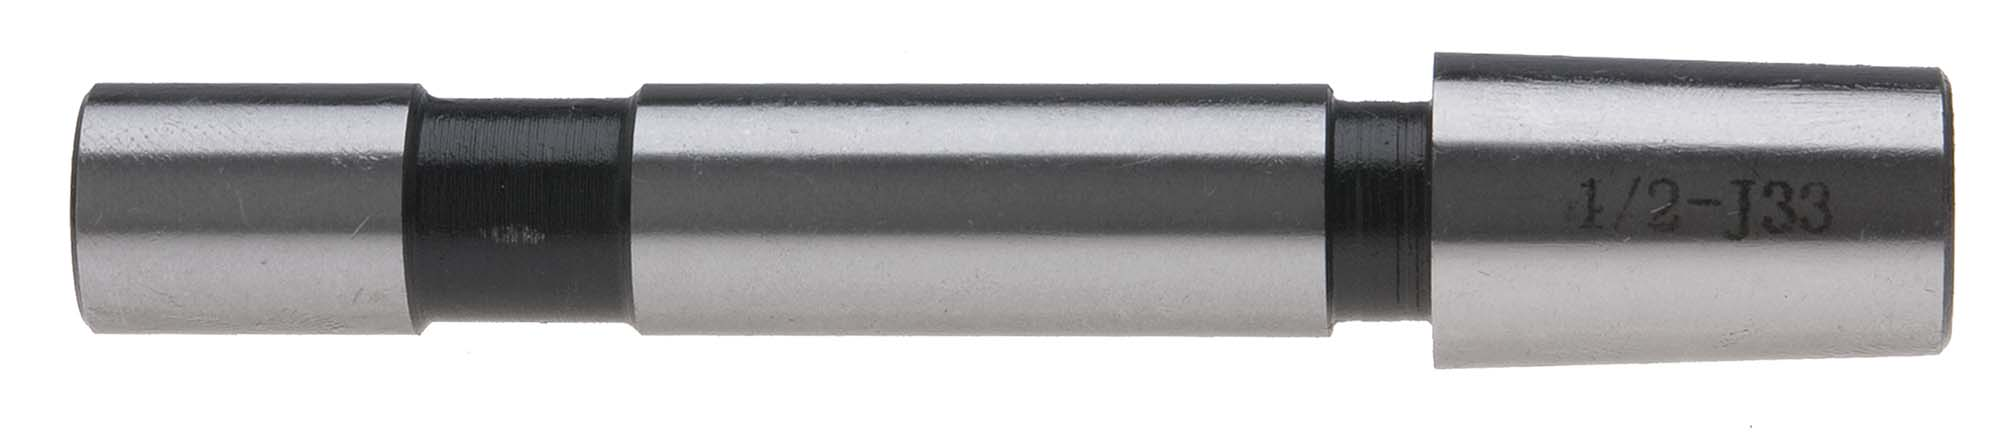 "3/8"" Straight Shank-1 Jacobs Taper Drill Chuck Arbor"